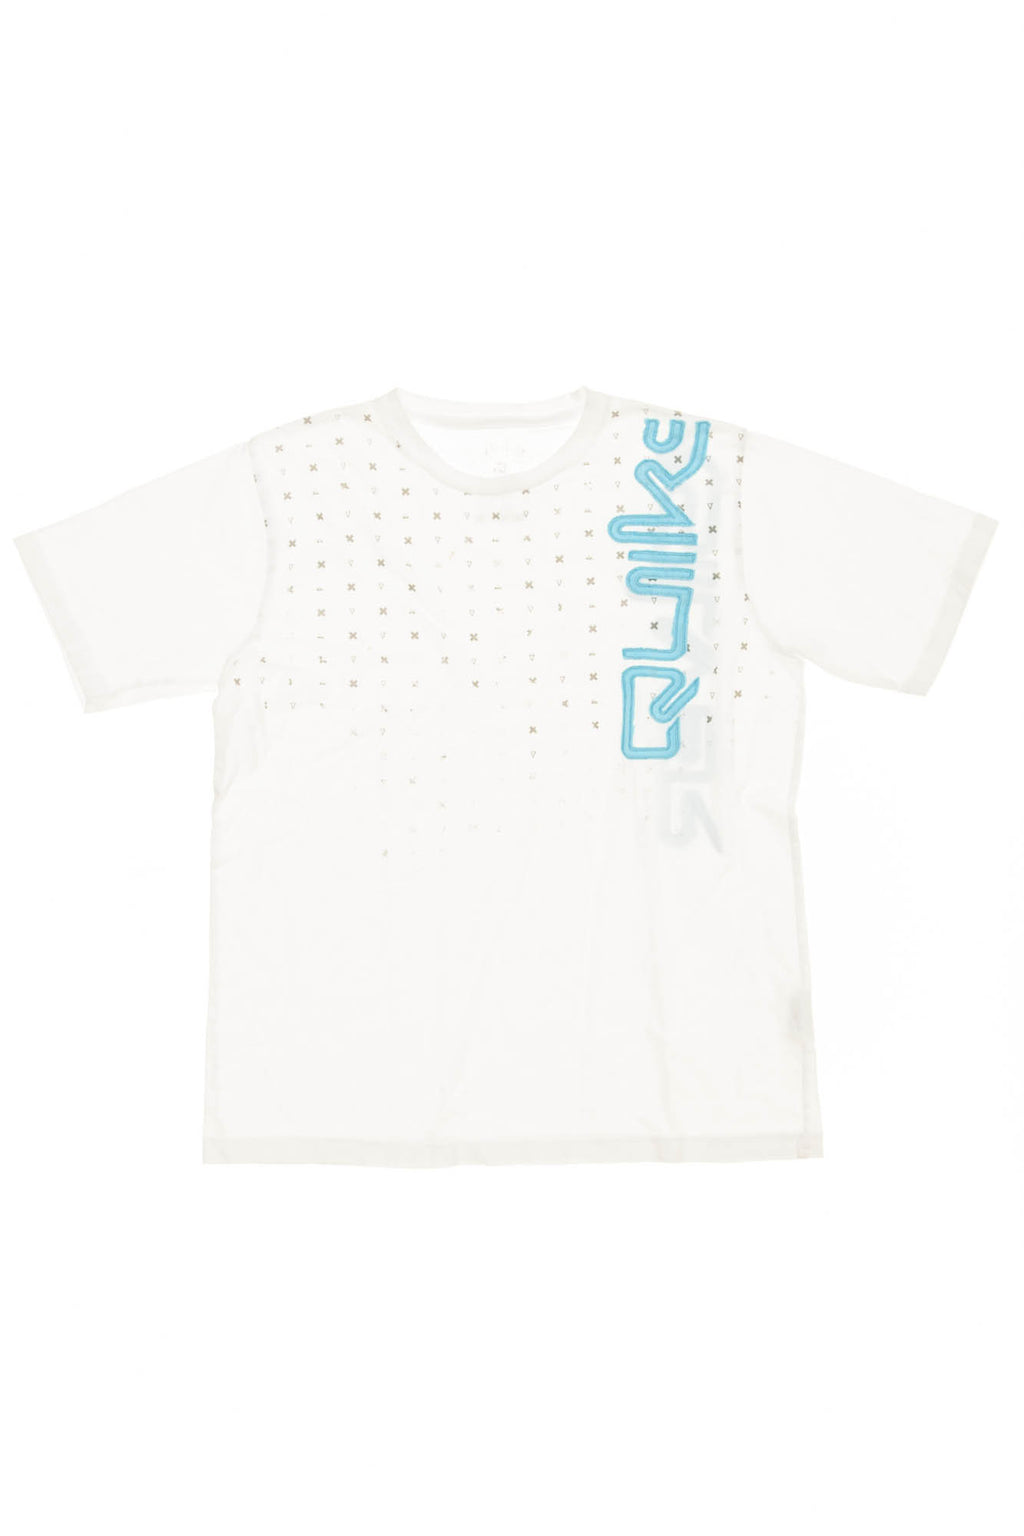 Quiksilver - White Graphic Short Sleeve Tshirt